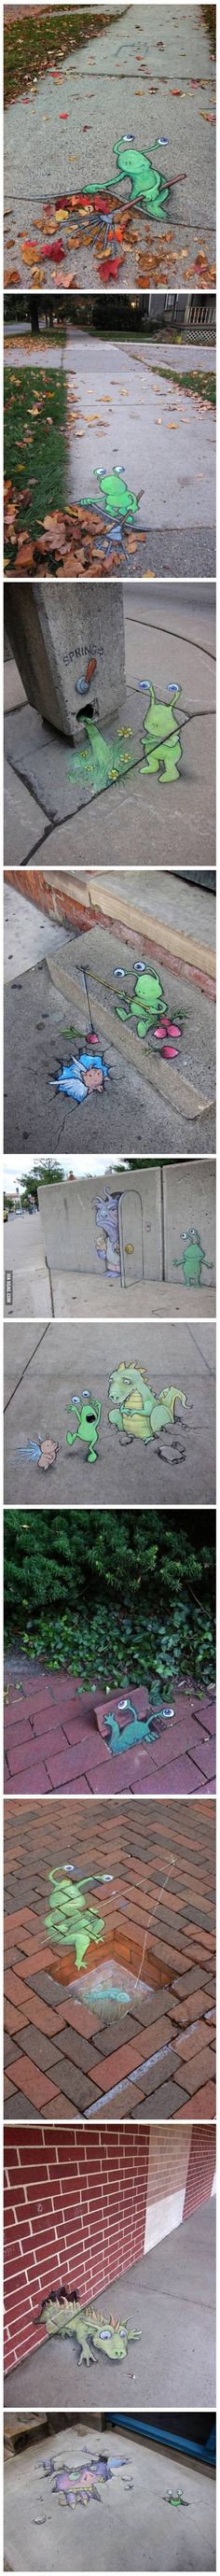 Awesome streetart.. I wish I could paint like that.